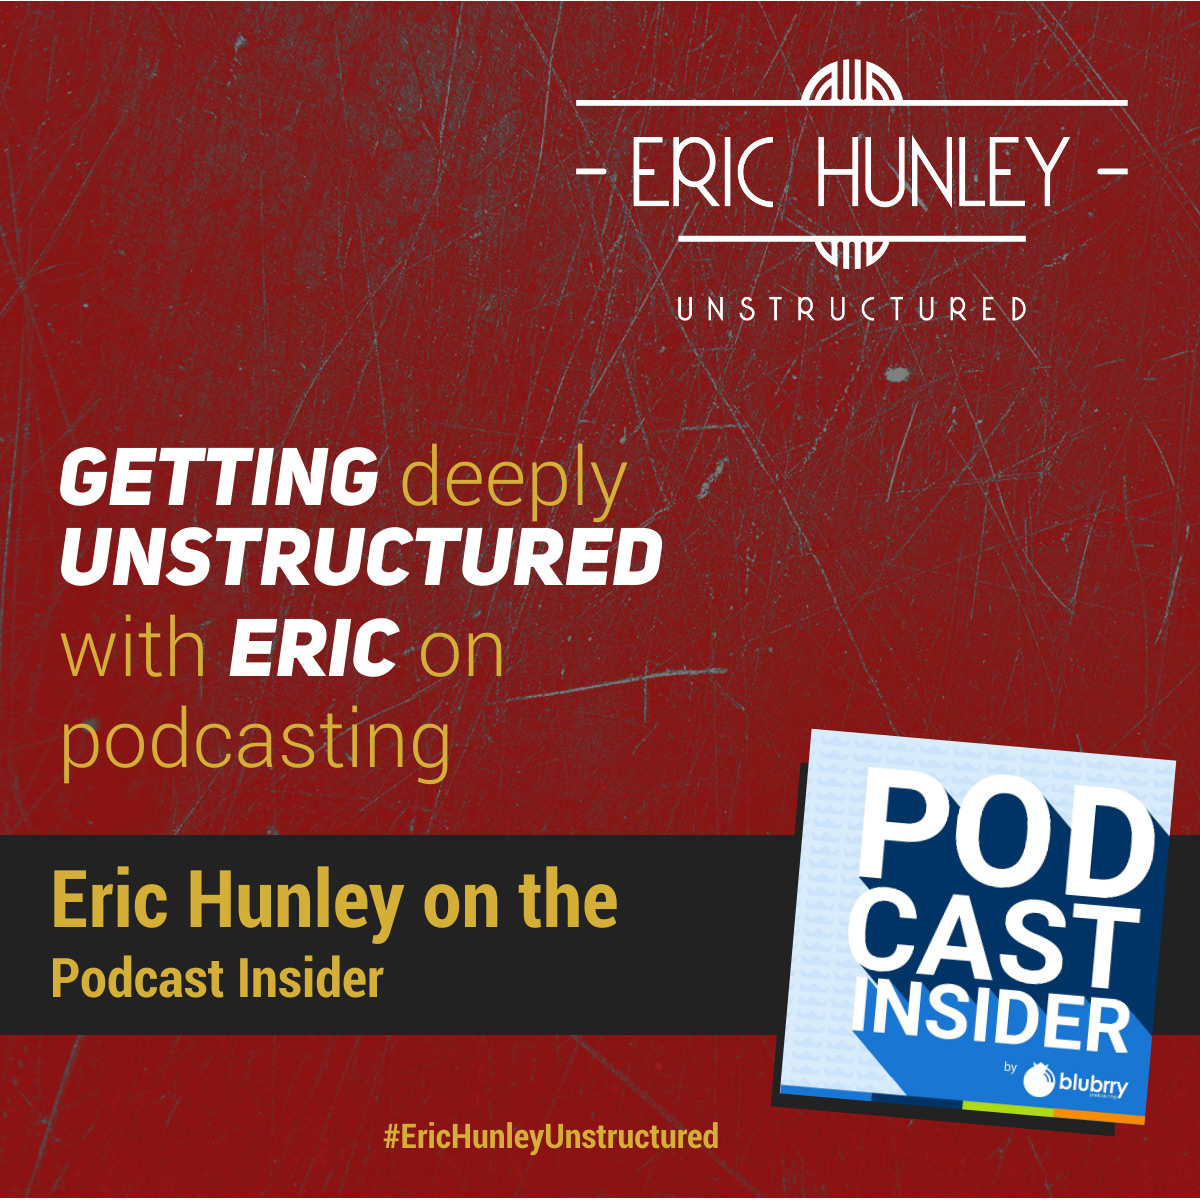 Eric Hunley Podcast Appearance Interviews - Podcast Insider Square Post